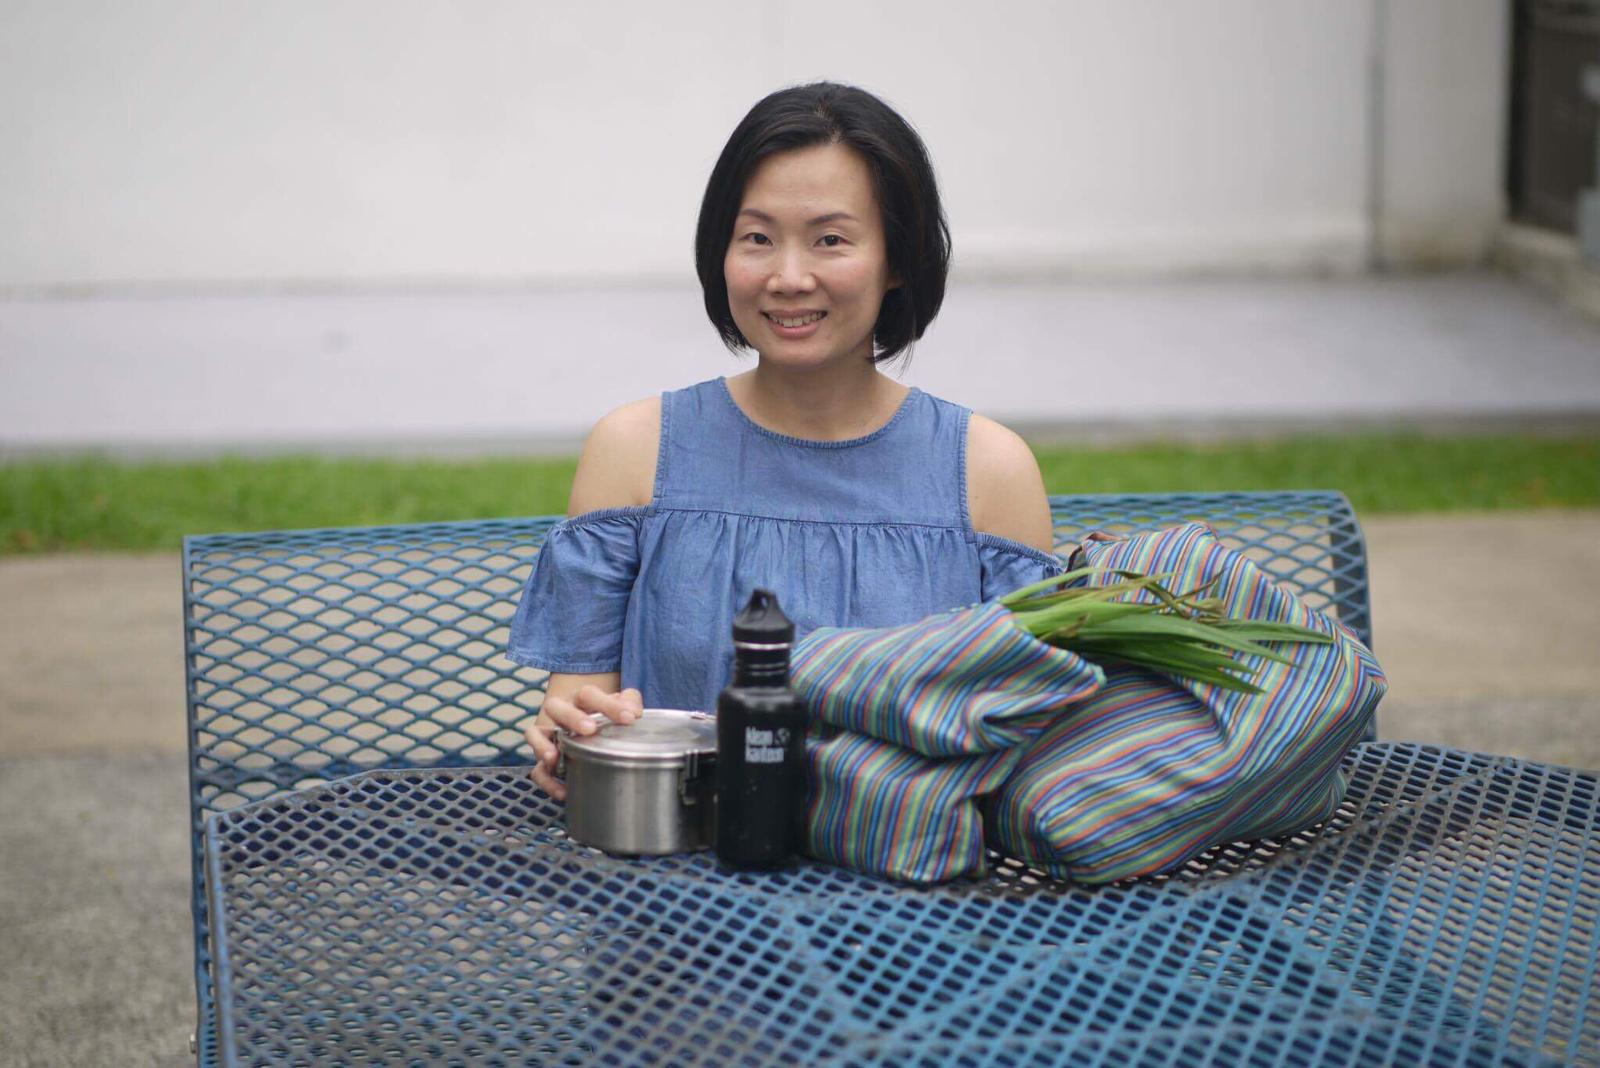 Our own eco-warrior, Sandra Zhang